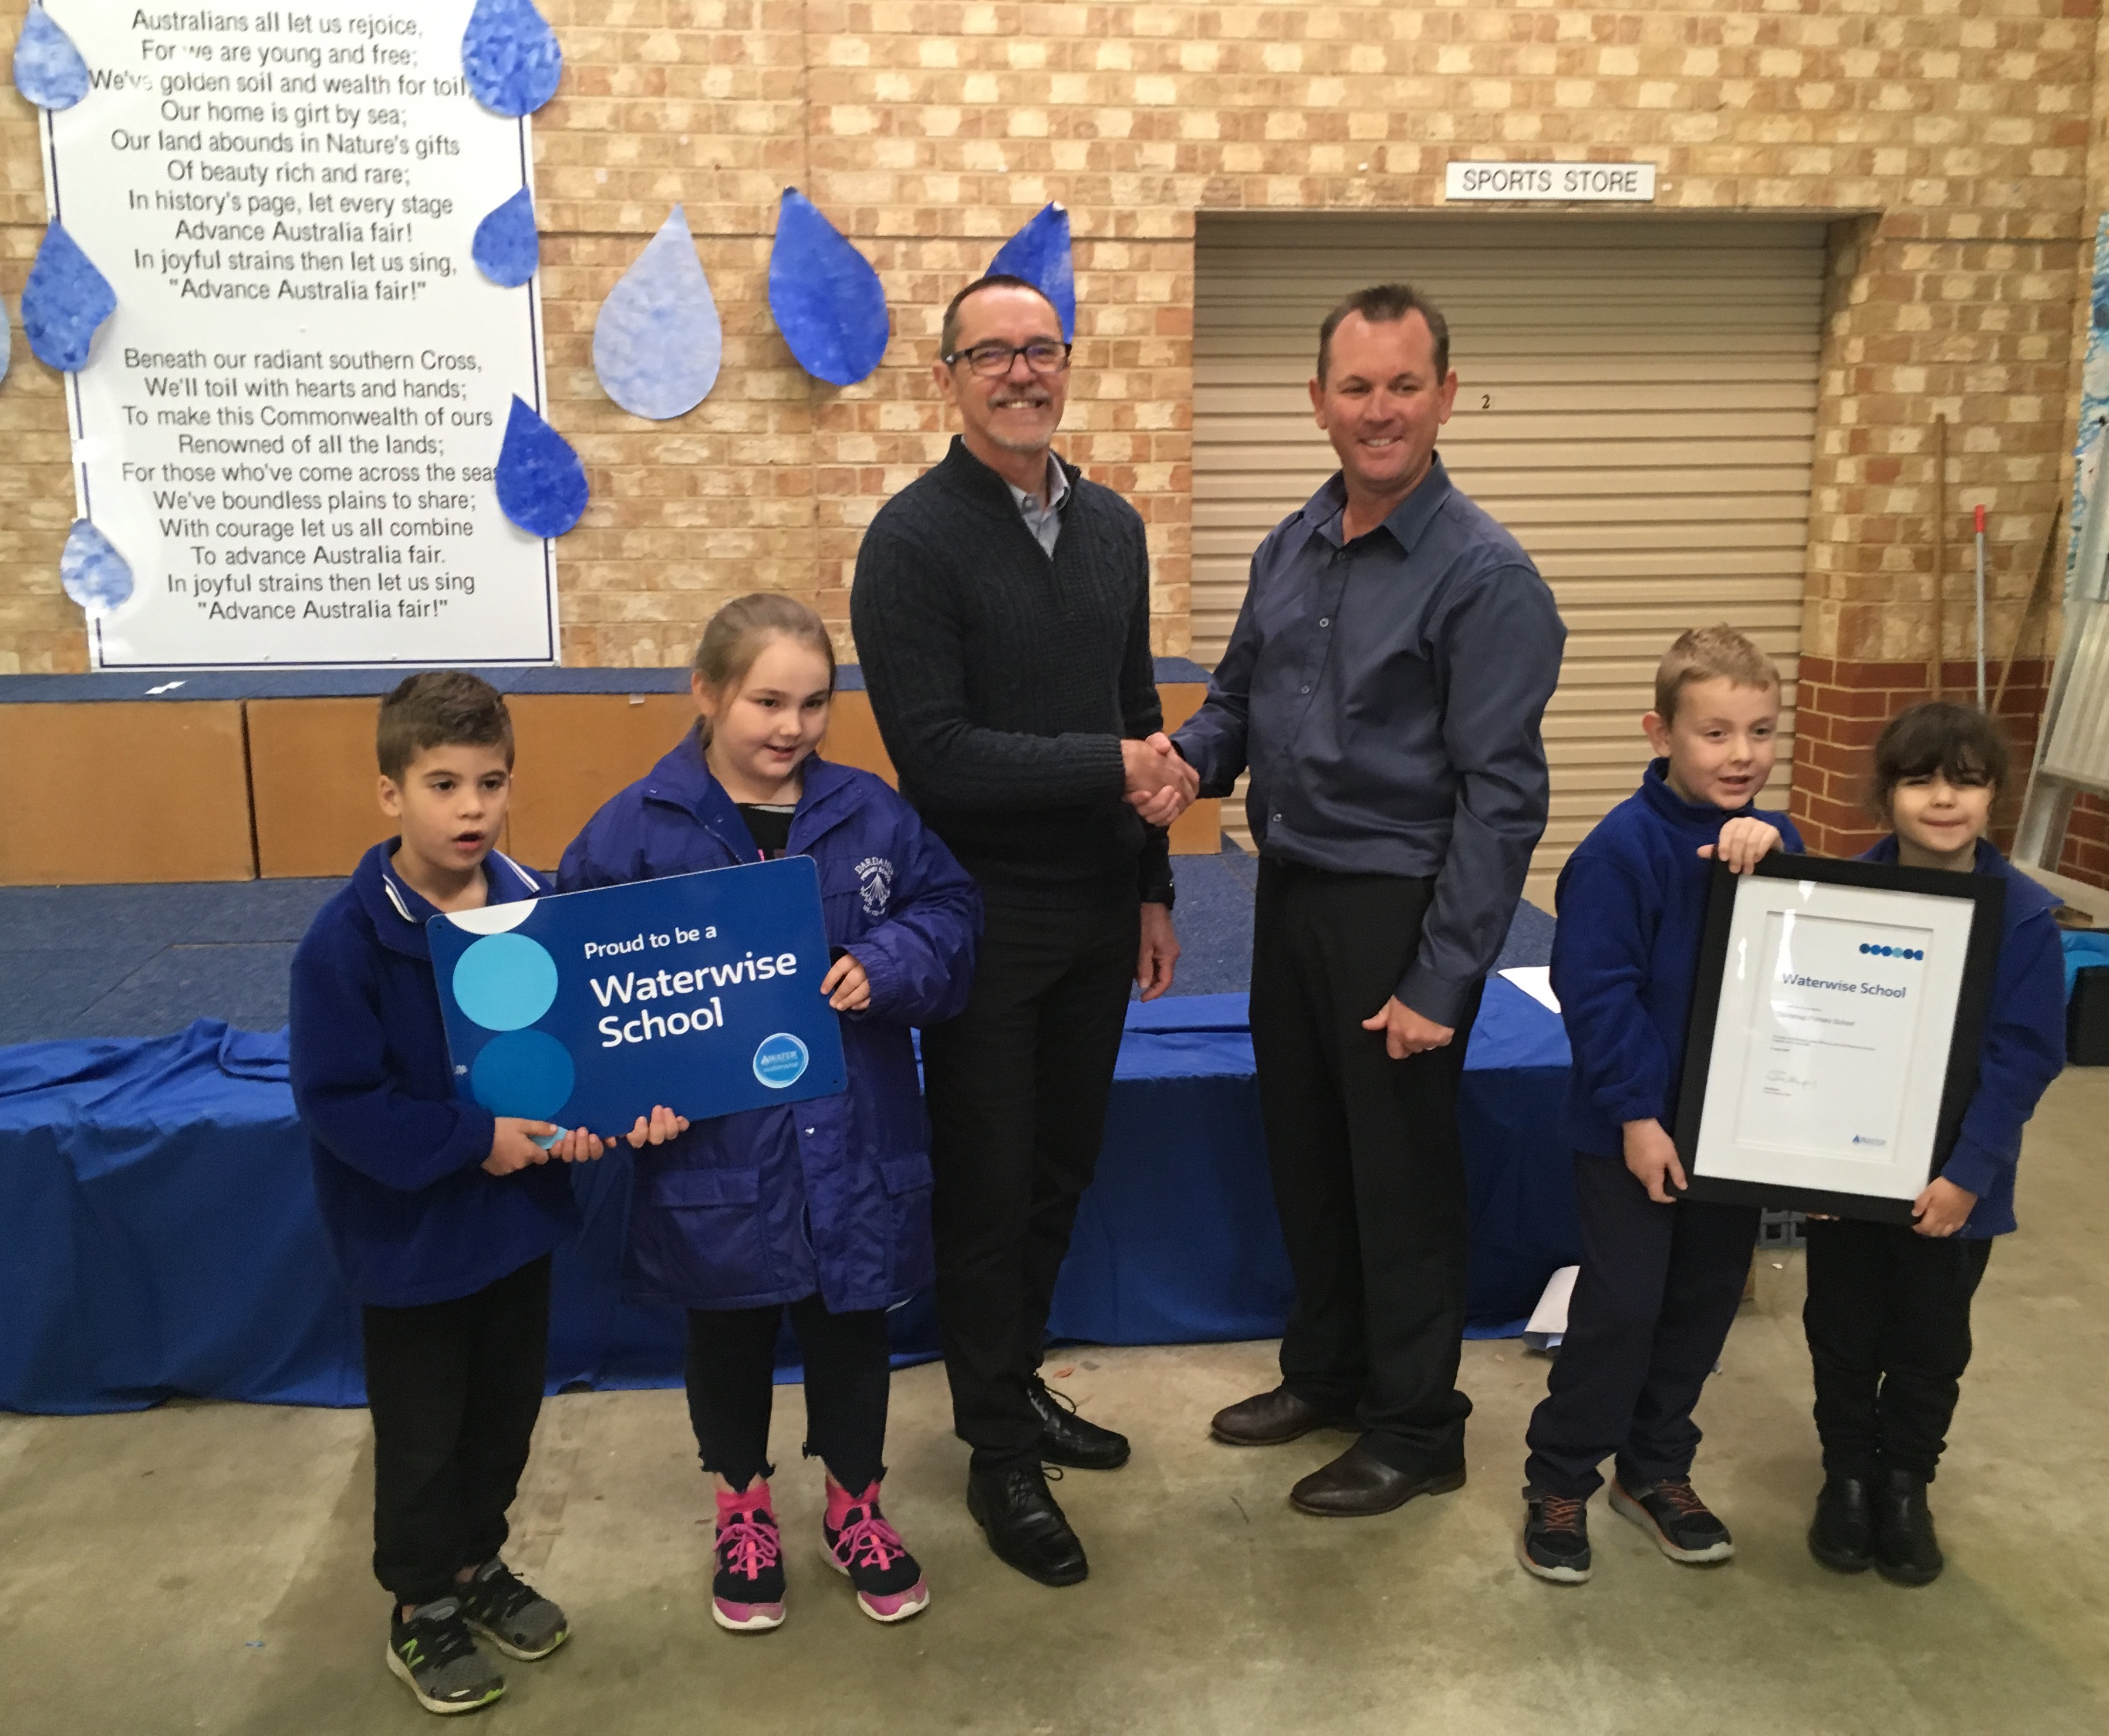 Dardanup Primary School celebrates a decade of waterwise education